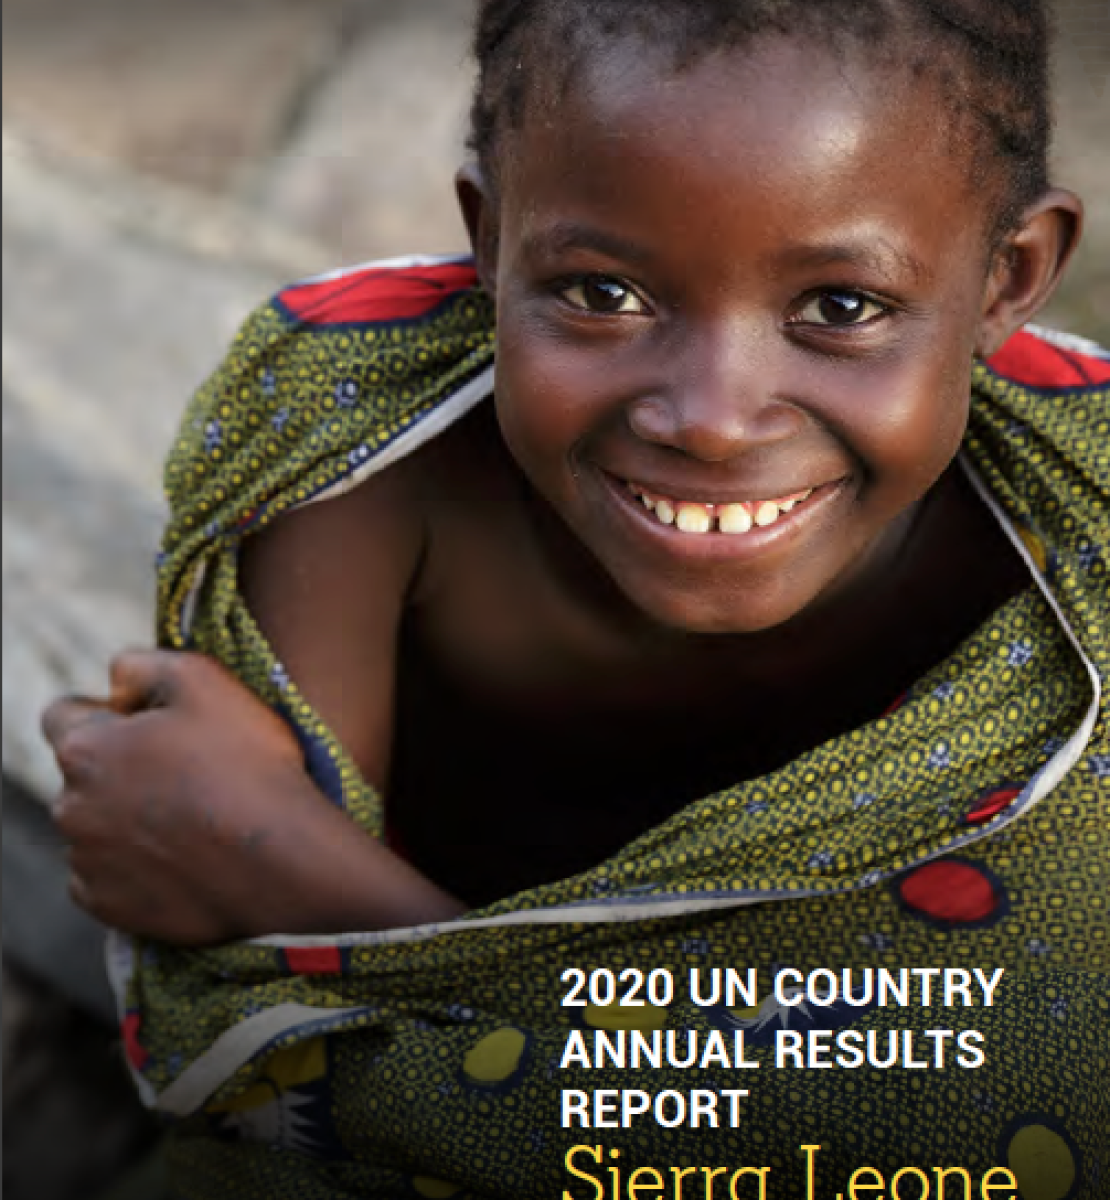 The cover shows a beautiful young girl wrapped in a colourful, mostly green fabric as she smiles up at the camera with the title of the report at the bottom right corner.